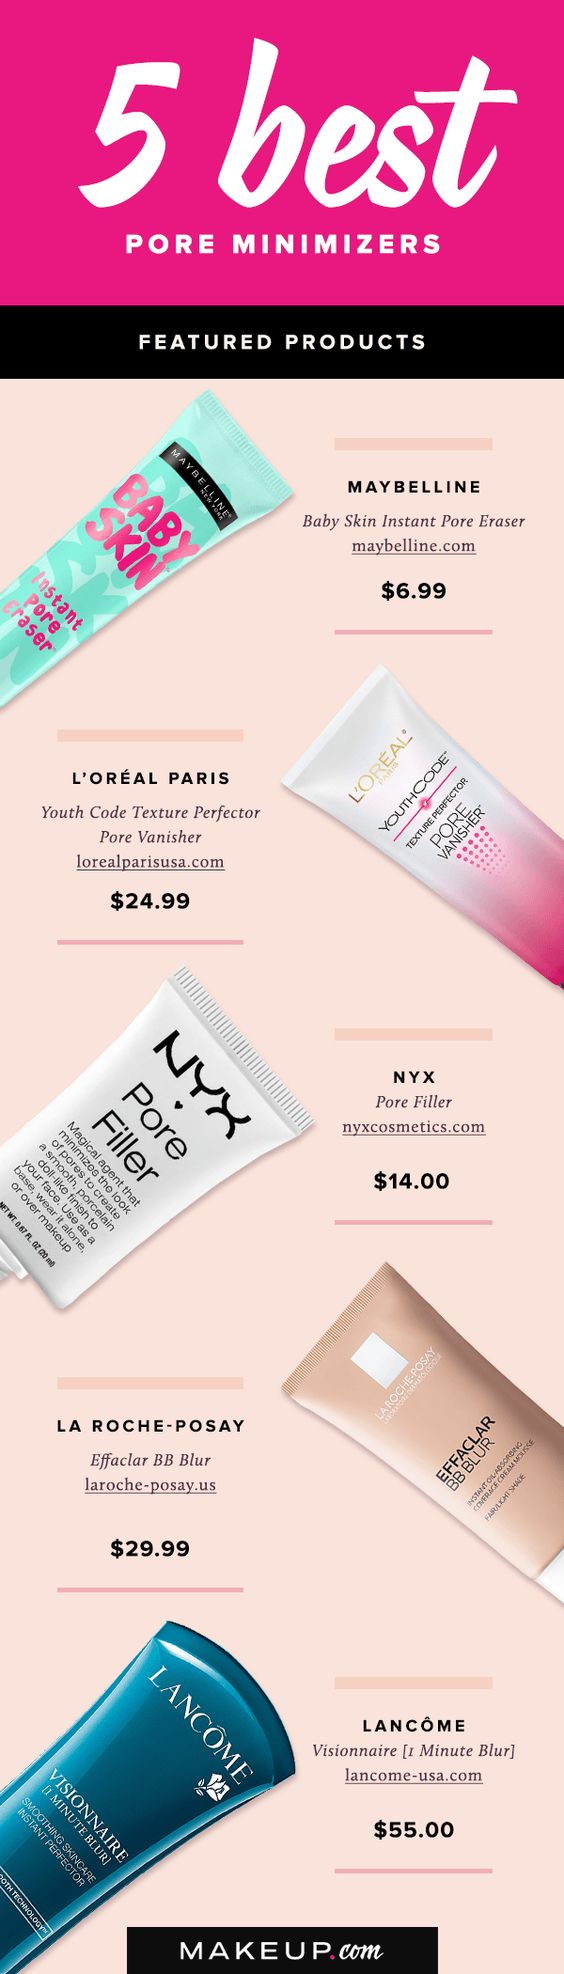 Nothing disrupts a flawless complexion more than large pores. If you want your skin to look smooth and your makeup to look its best, you'll want to add these beauty products to all of your makeup routines.